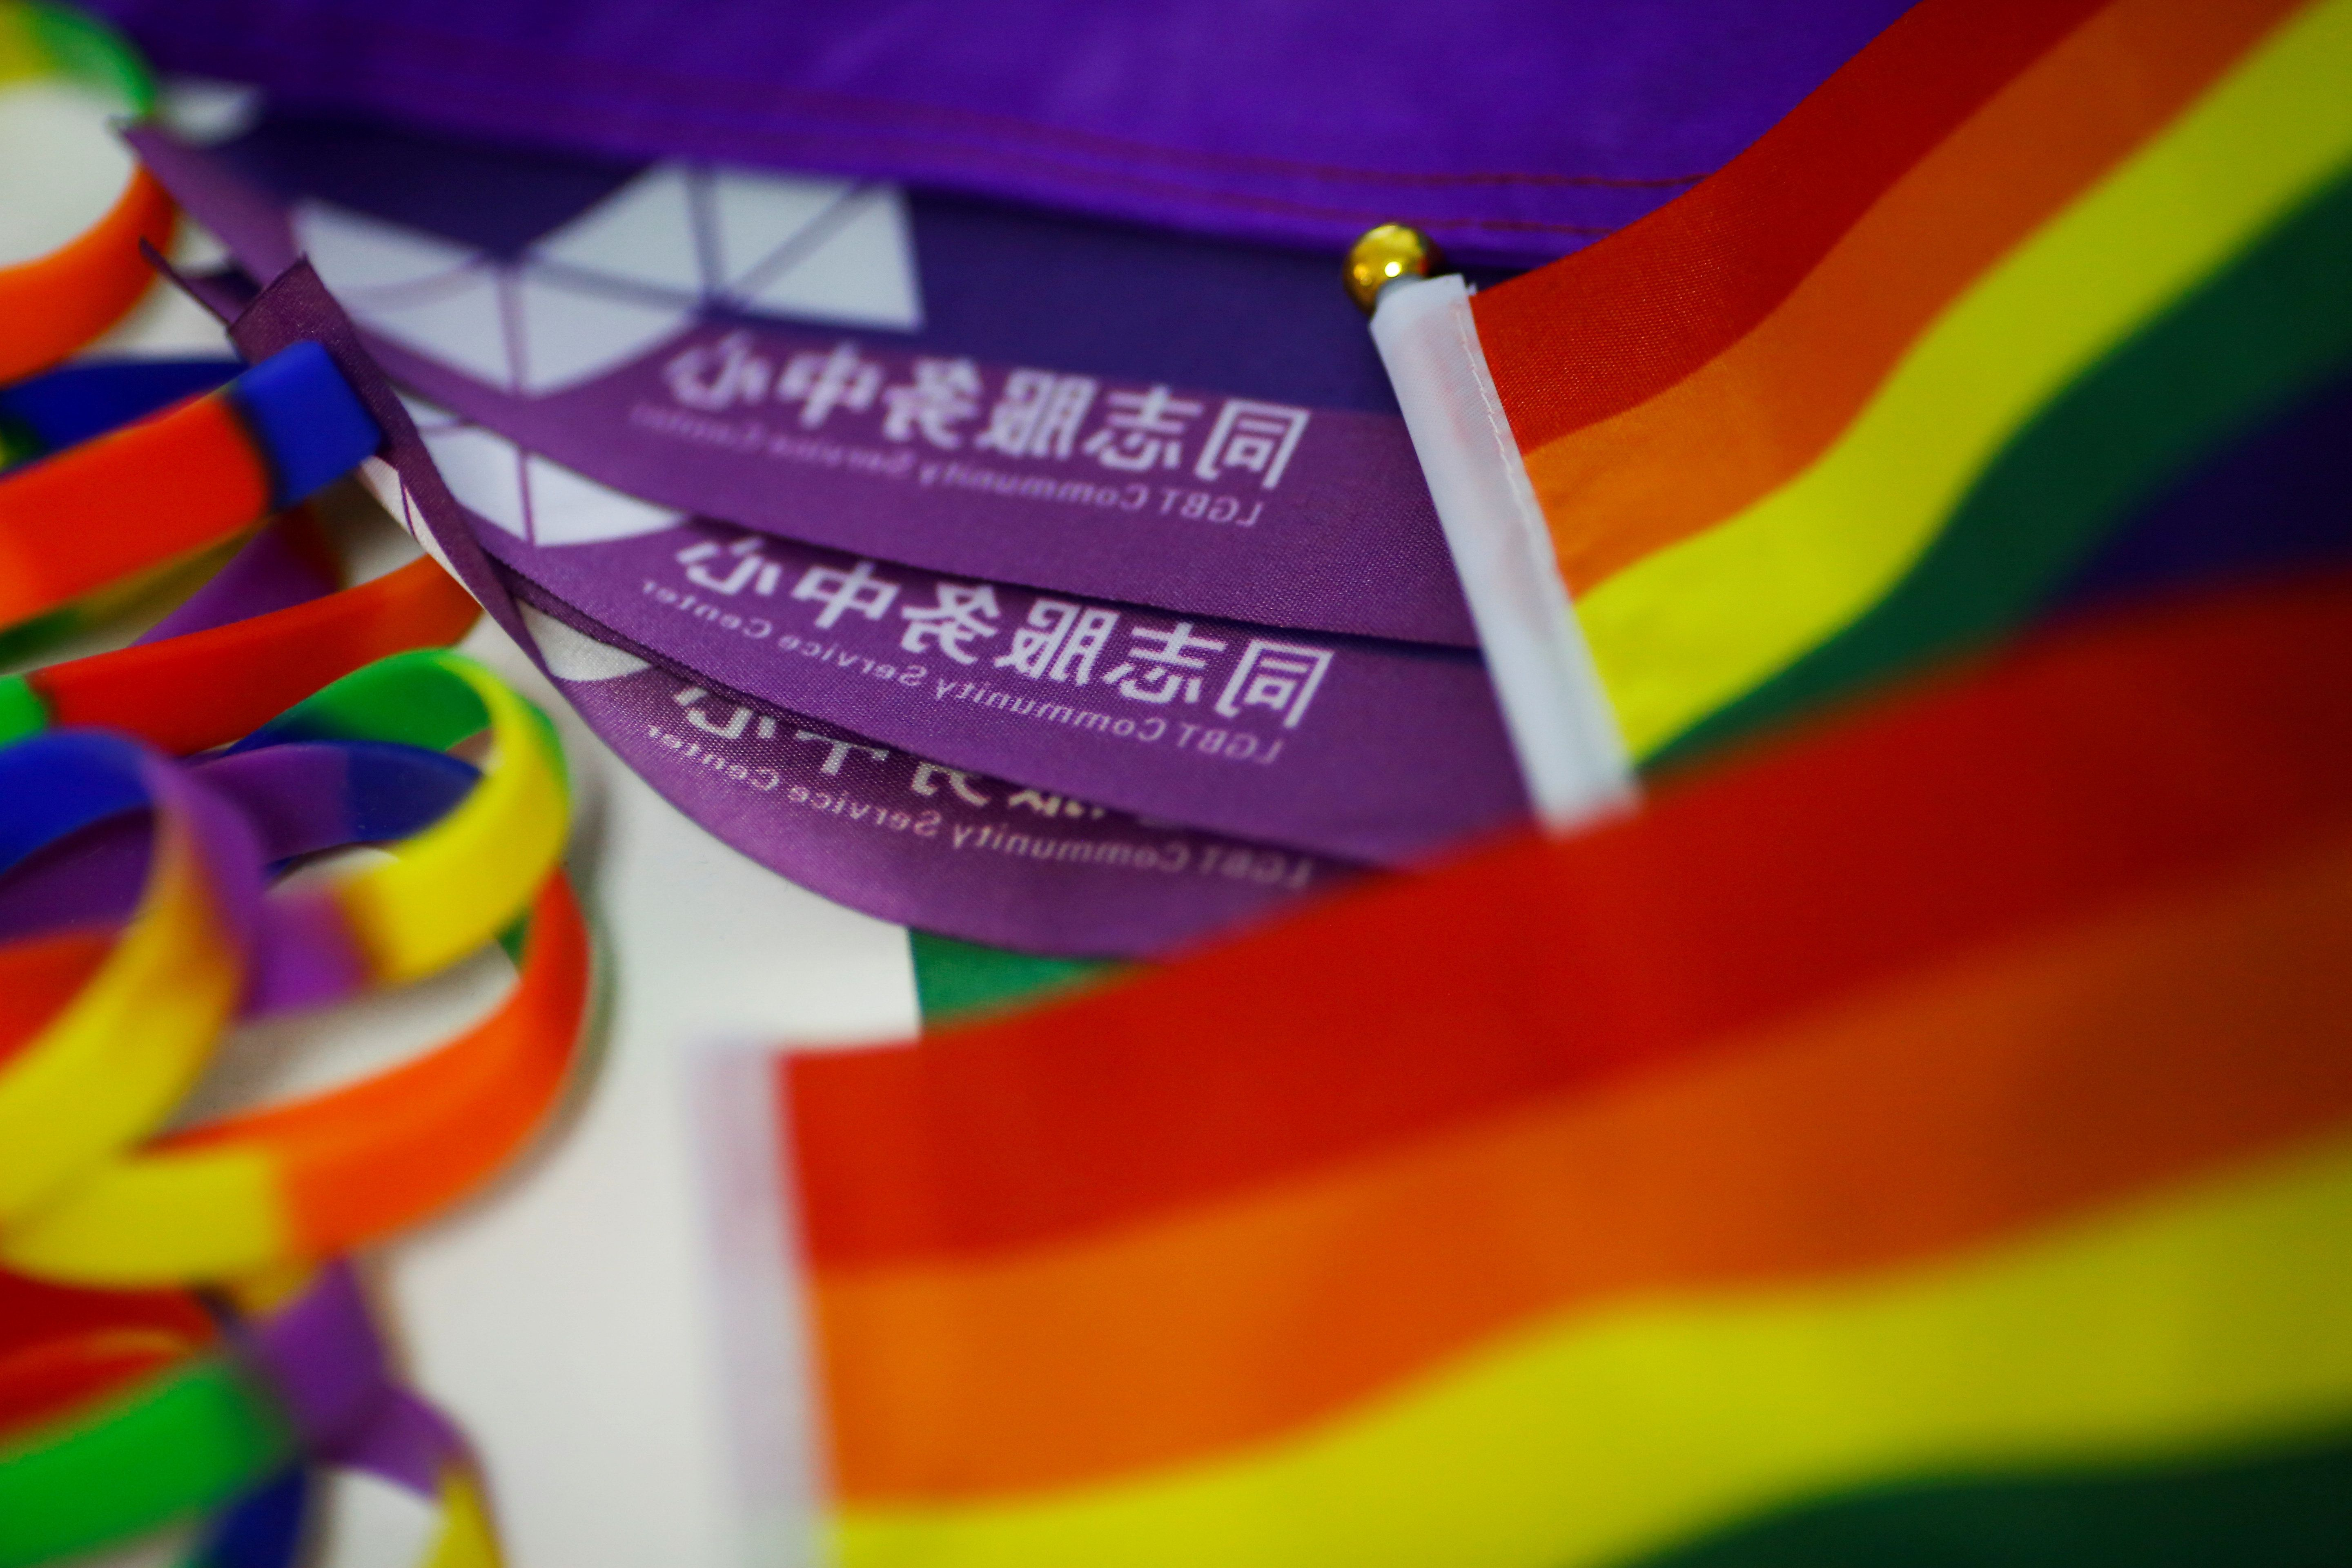 What does it mean if your sexual orientation is chinese